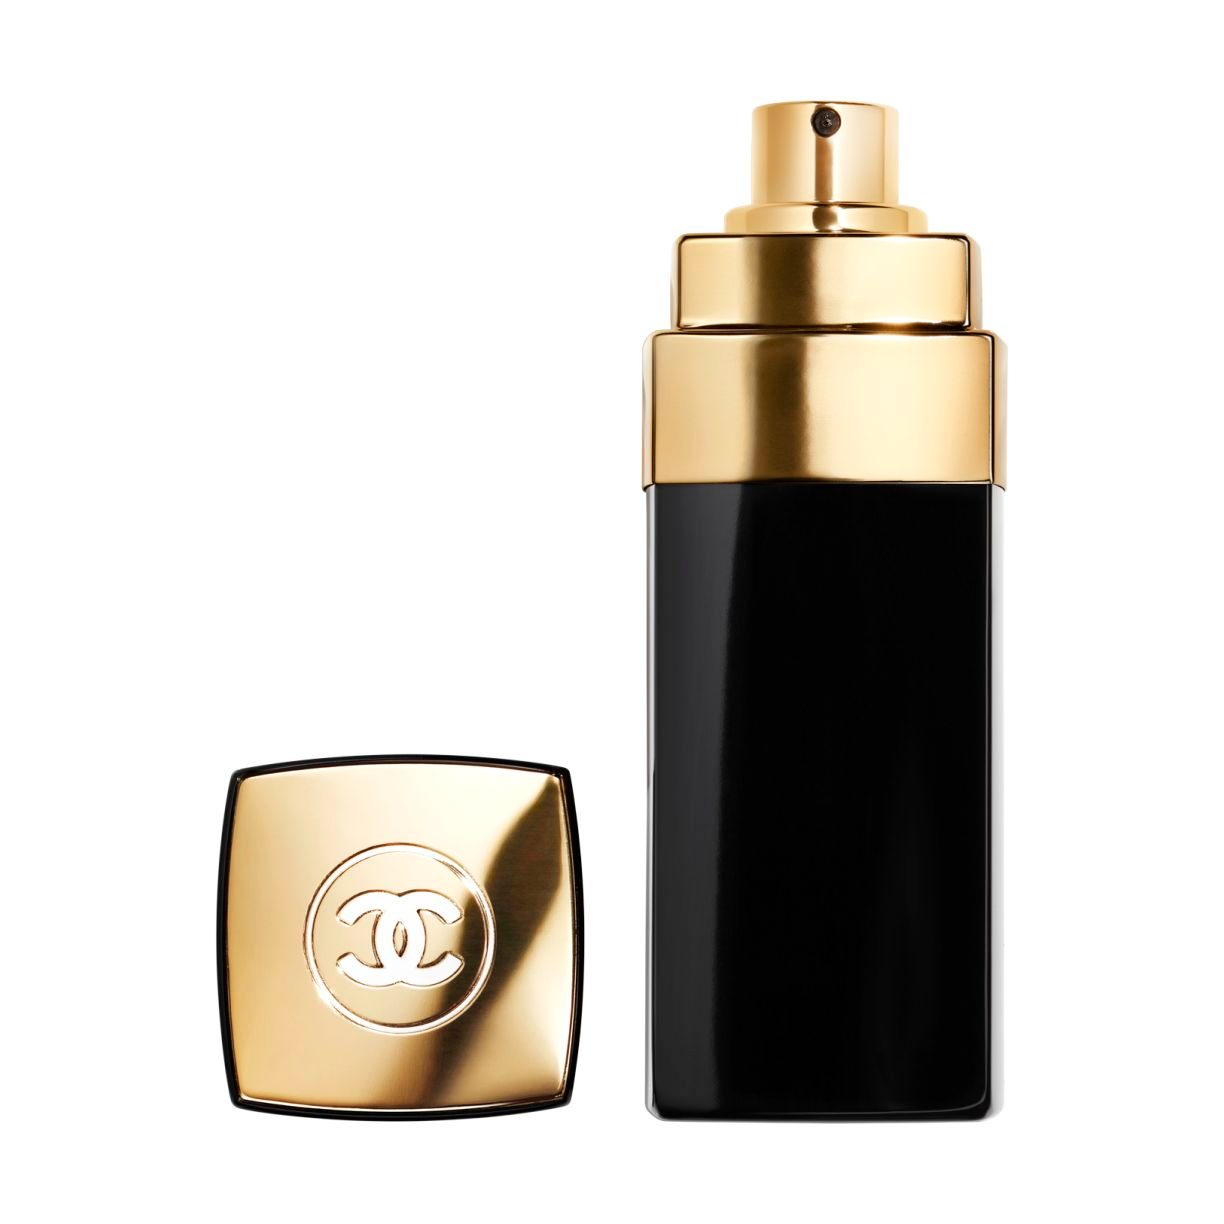 N°5 EAU DE TOILETTE REFILLABLE SPRAY